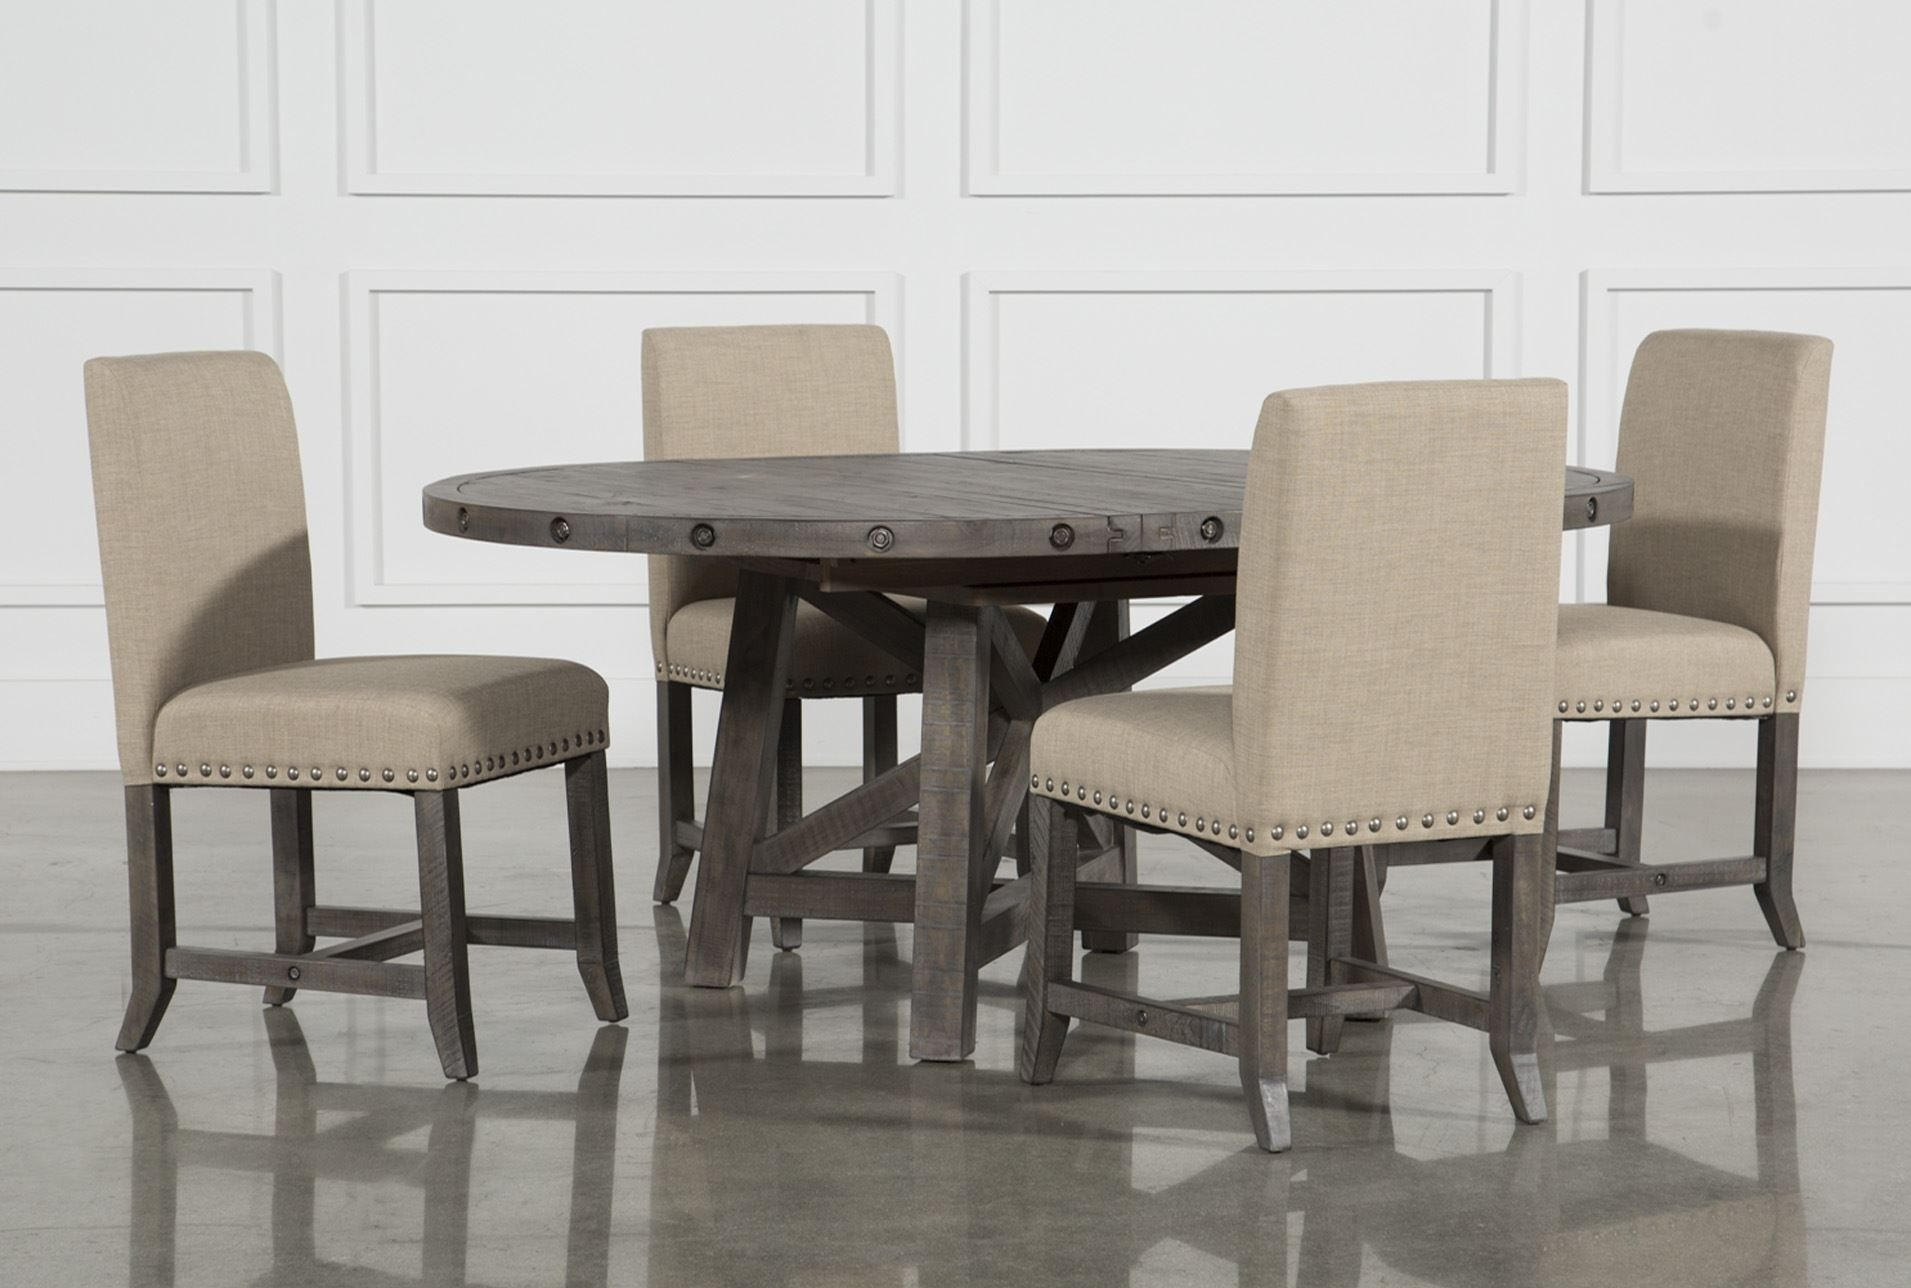 Jaxon Grey 5 Piece Round Extension Dining Set W/upholstered Chairs Intended For Best And Newest Jaxon 6 Piece Rectangle Dining Sets With Bench & Uph Chairs (Image 14 of 20)